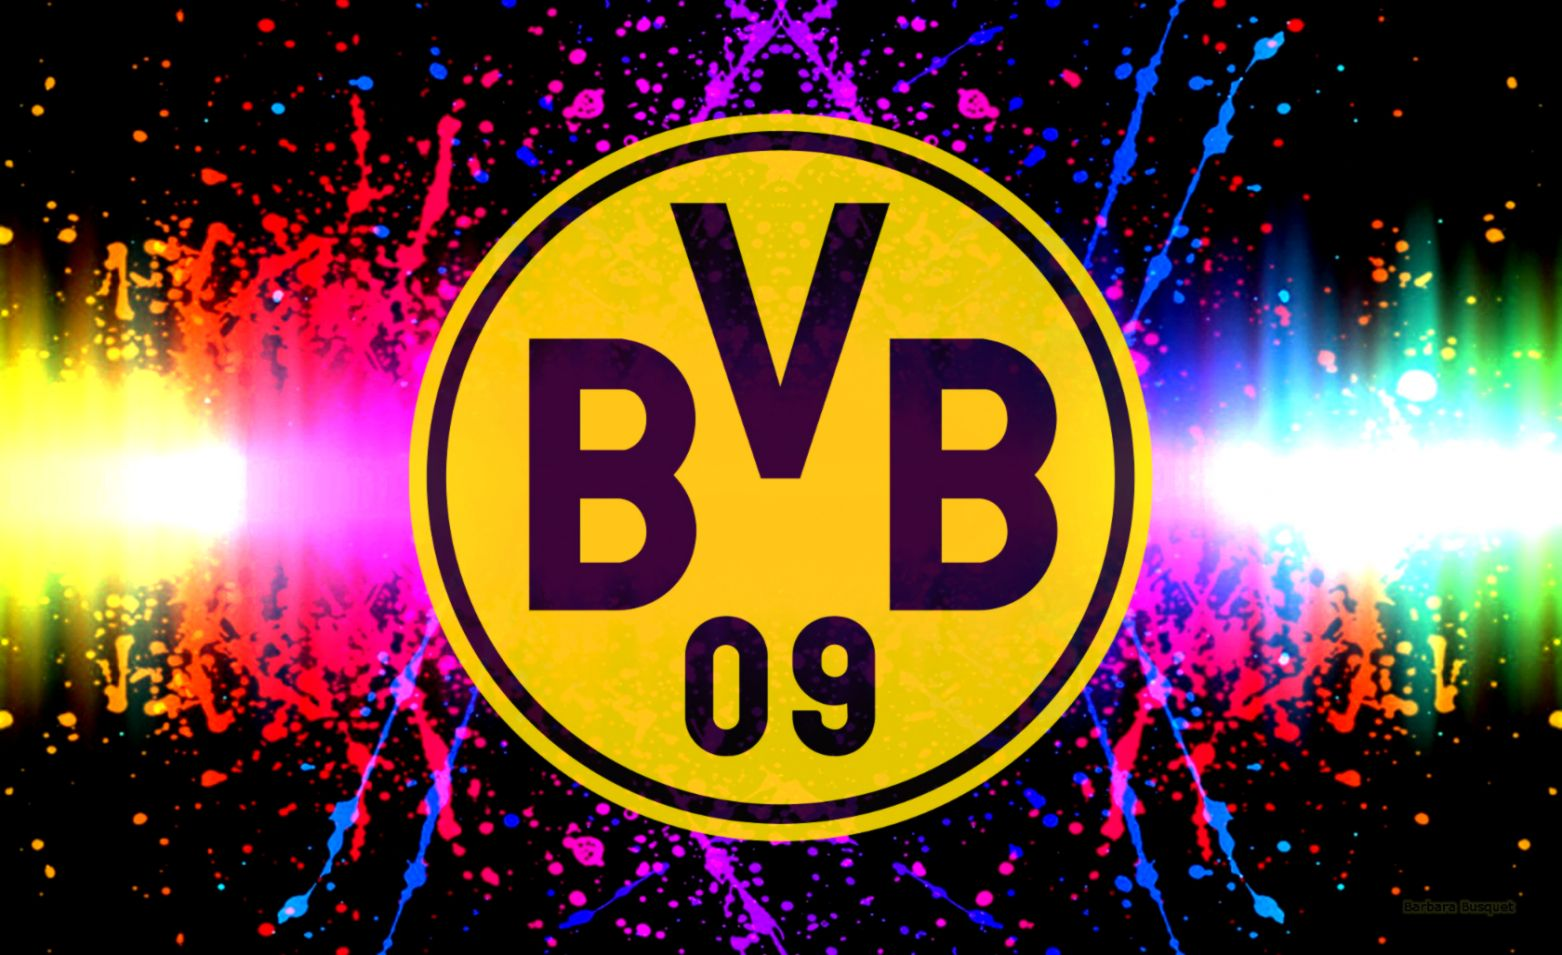 Bvb wallpaper iphone 4